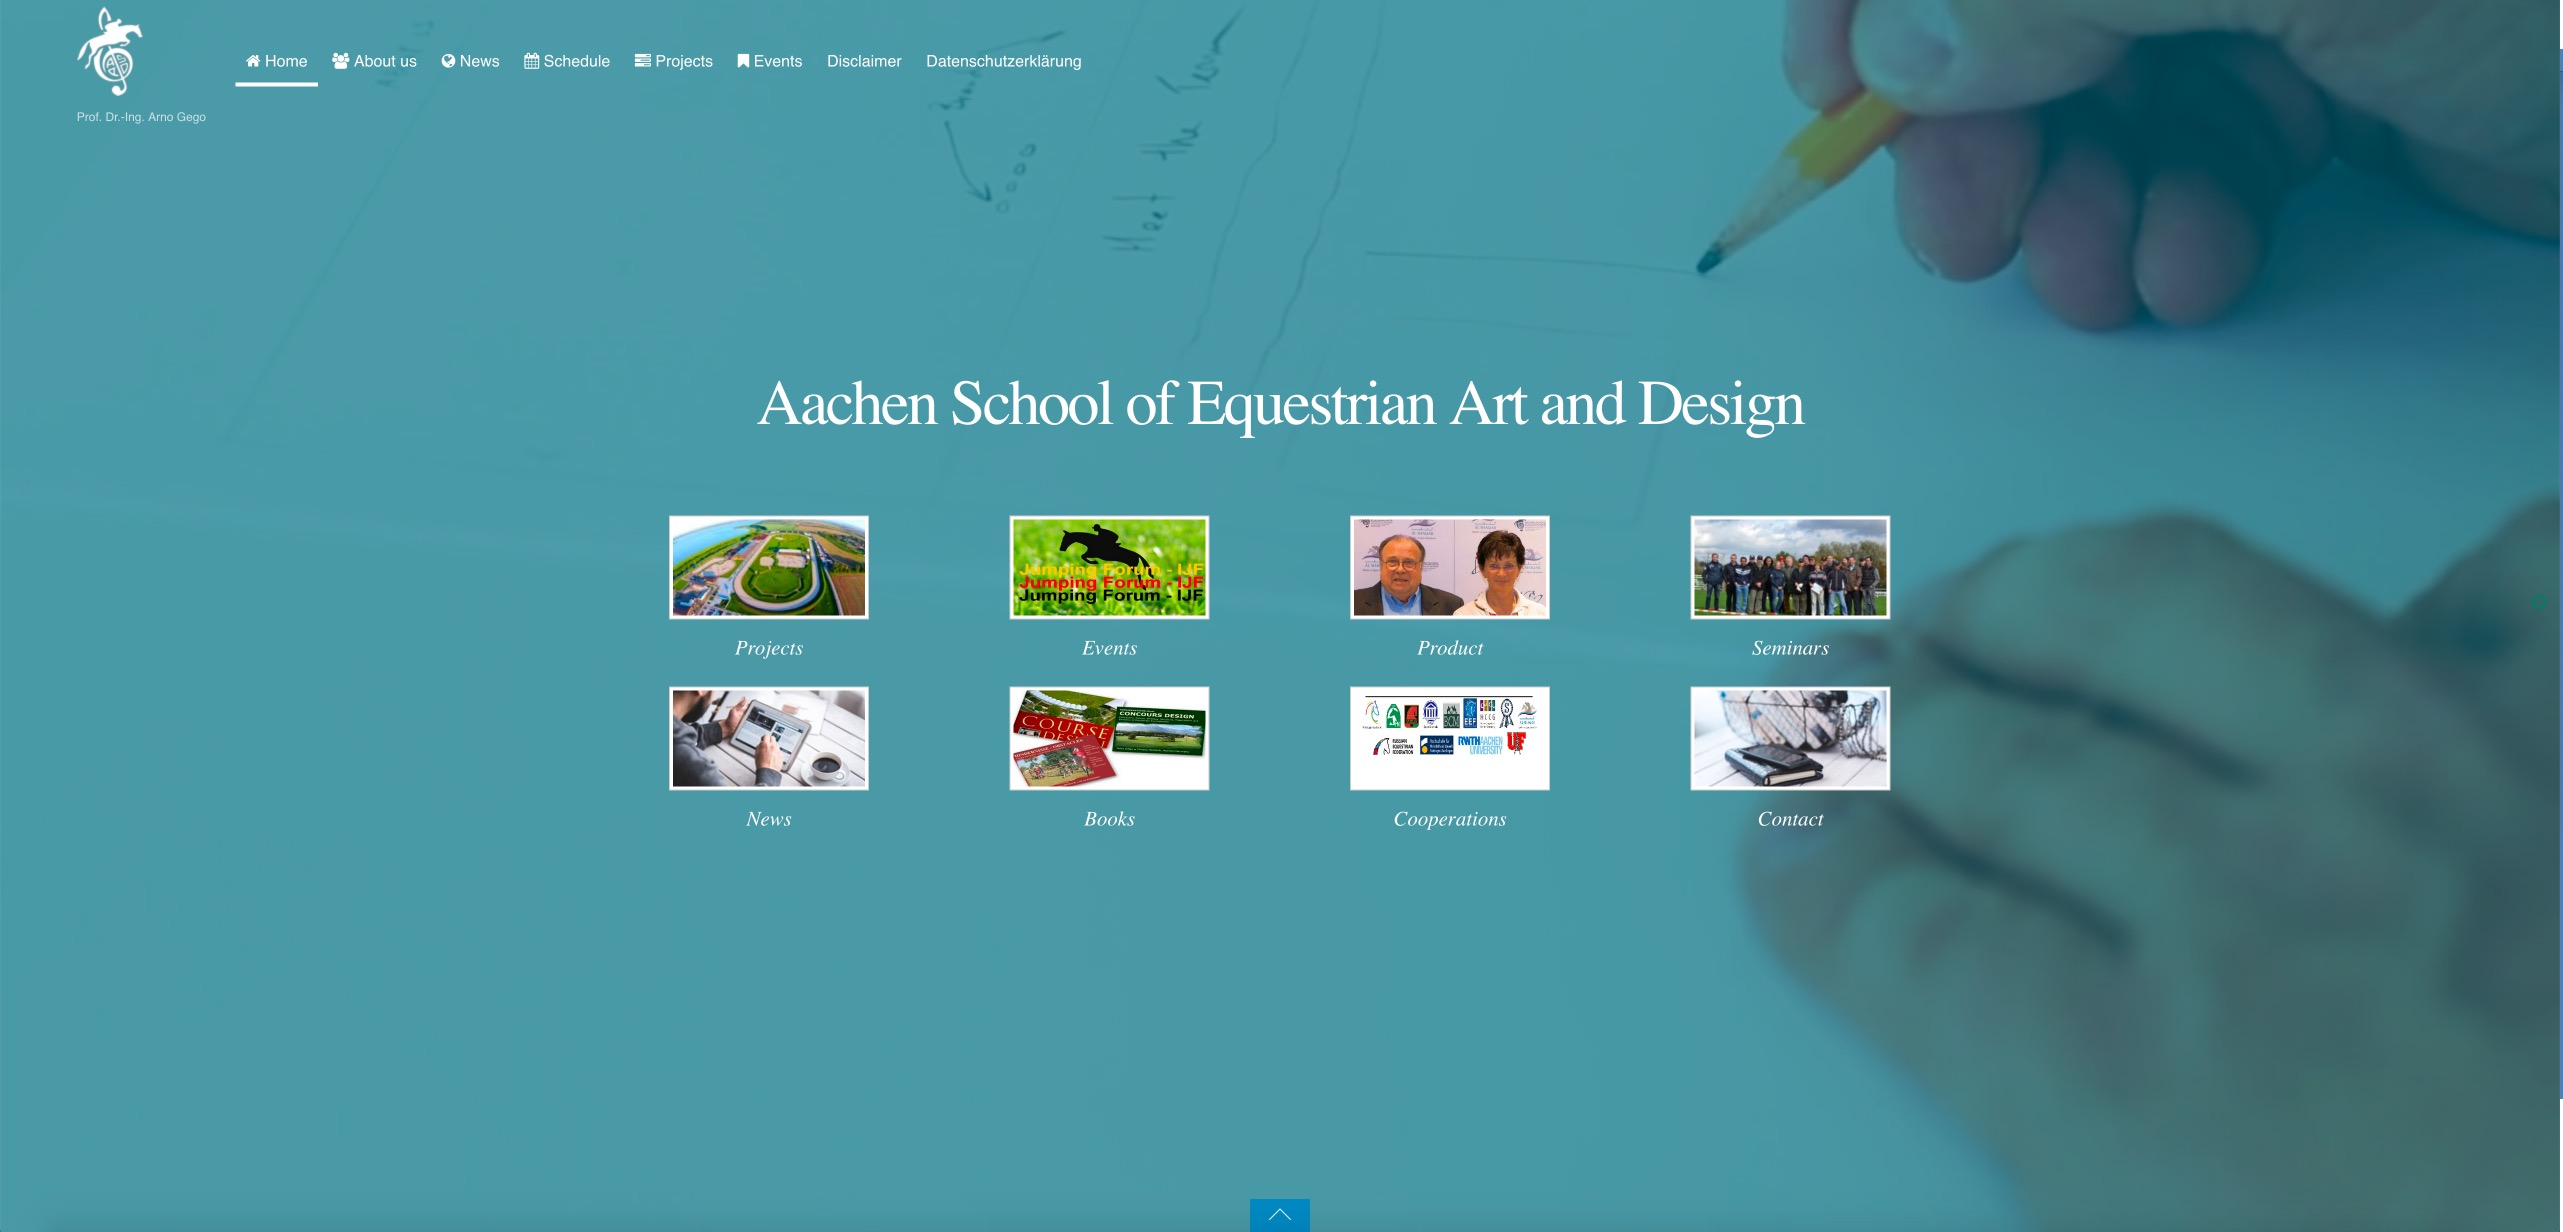 Aachen School of Equestrian Art and Design